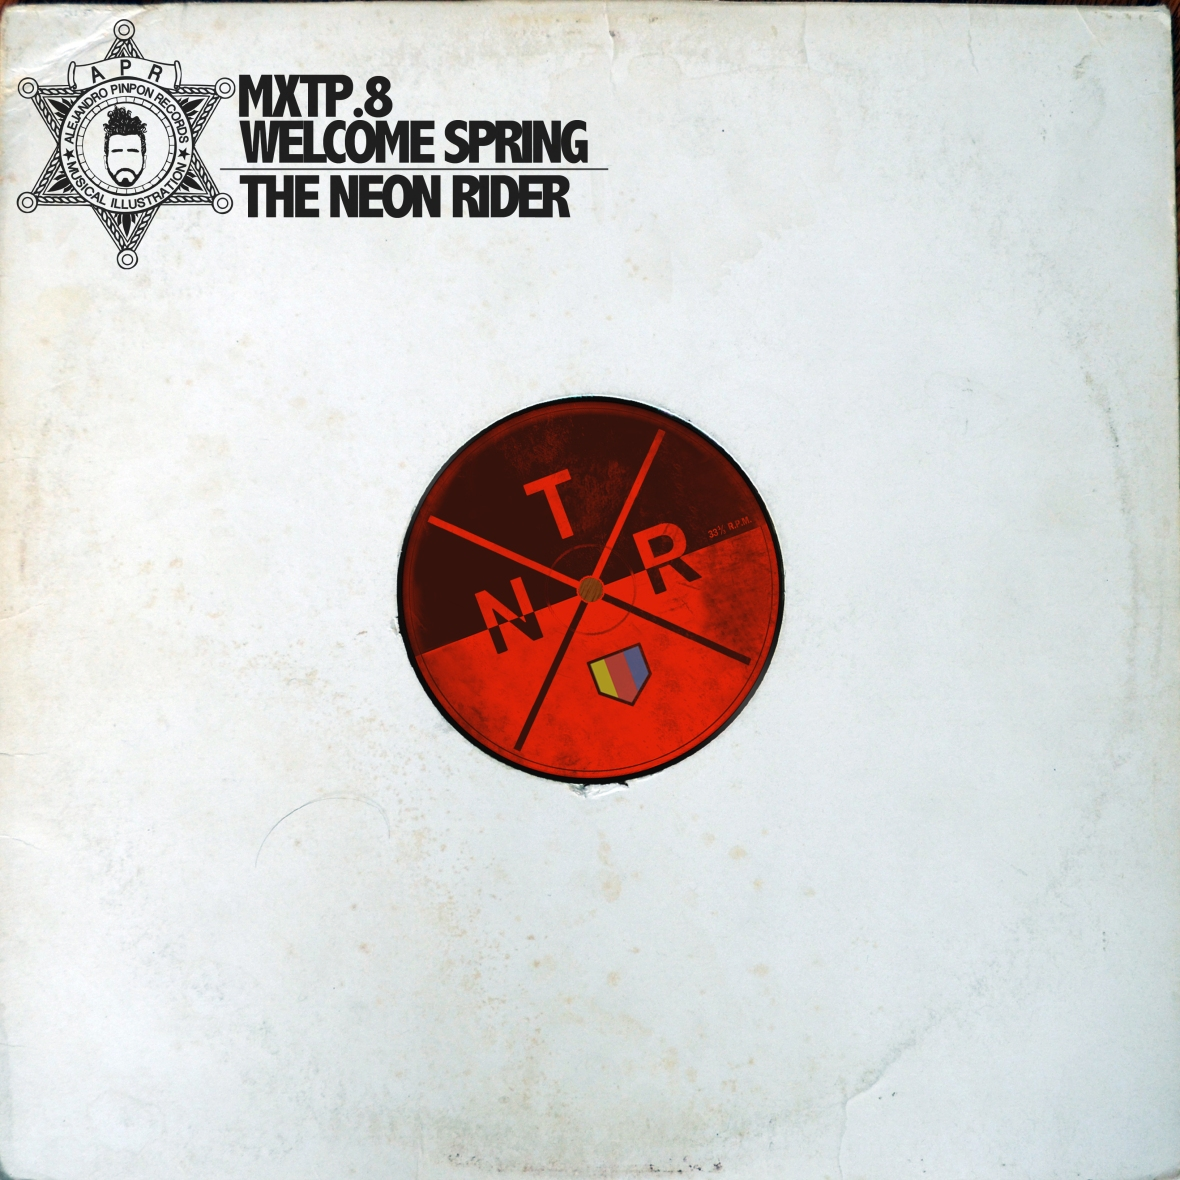 MXTP.8-WELCOME SPRING by THE NEON RIDER.jpg